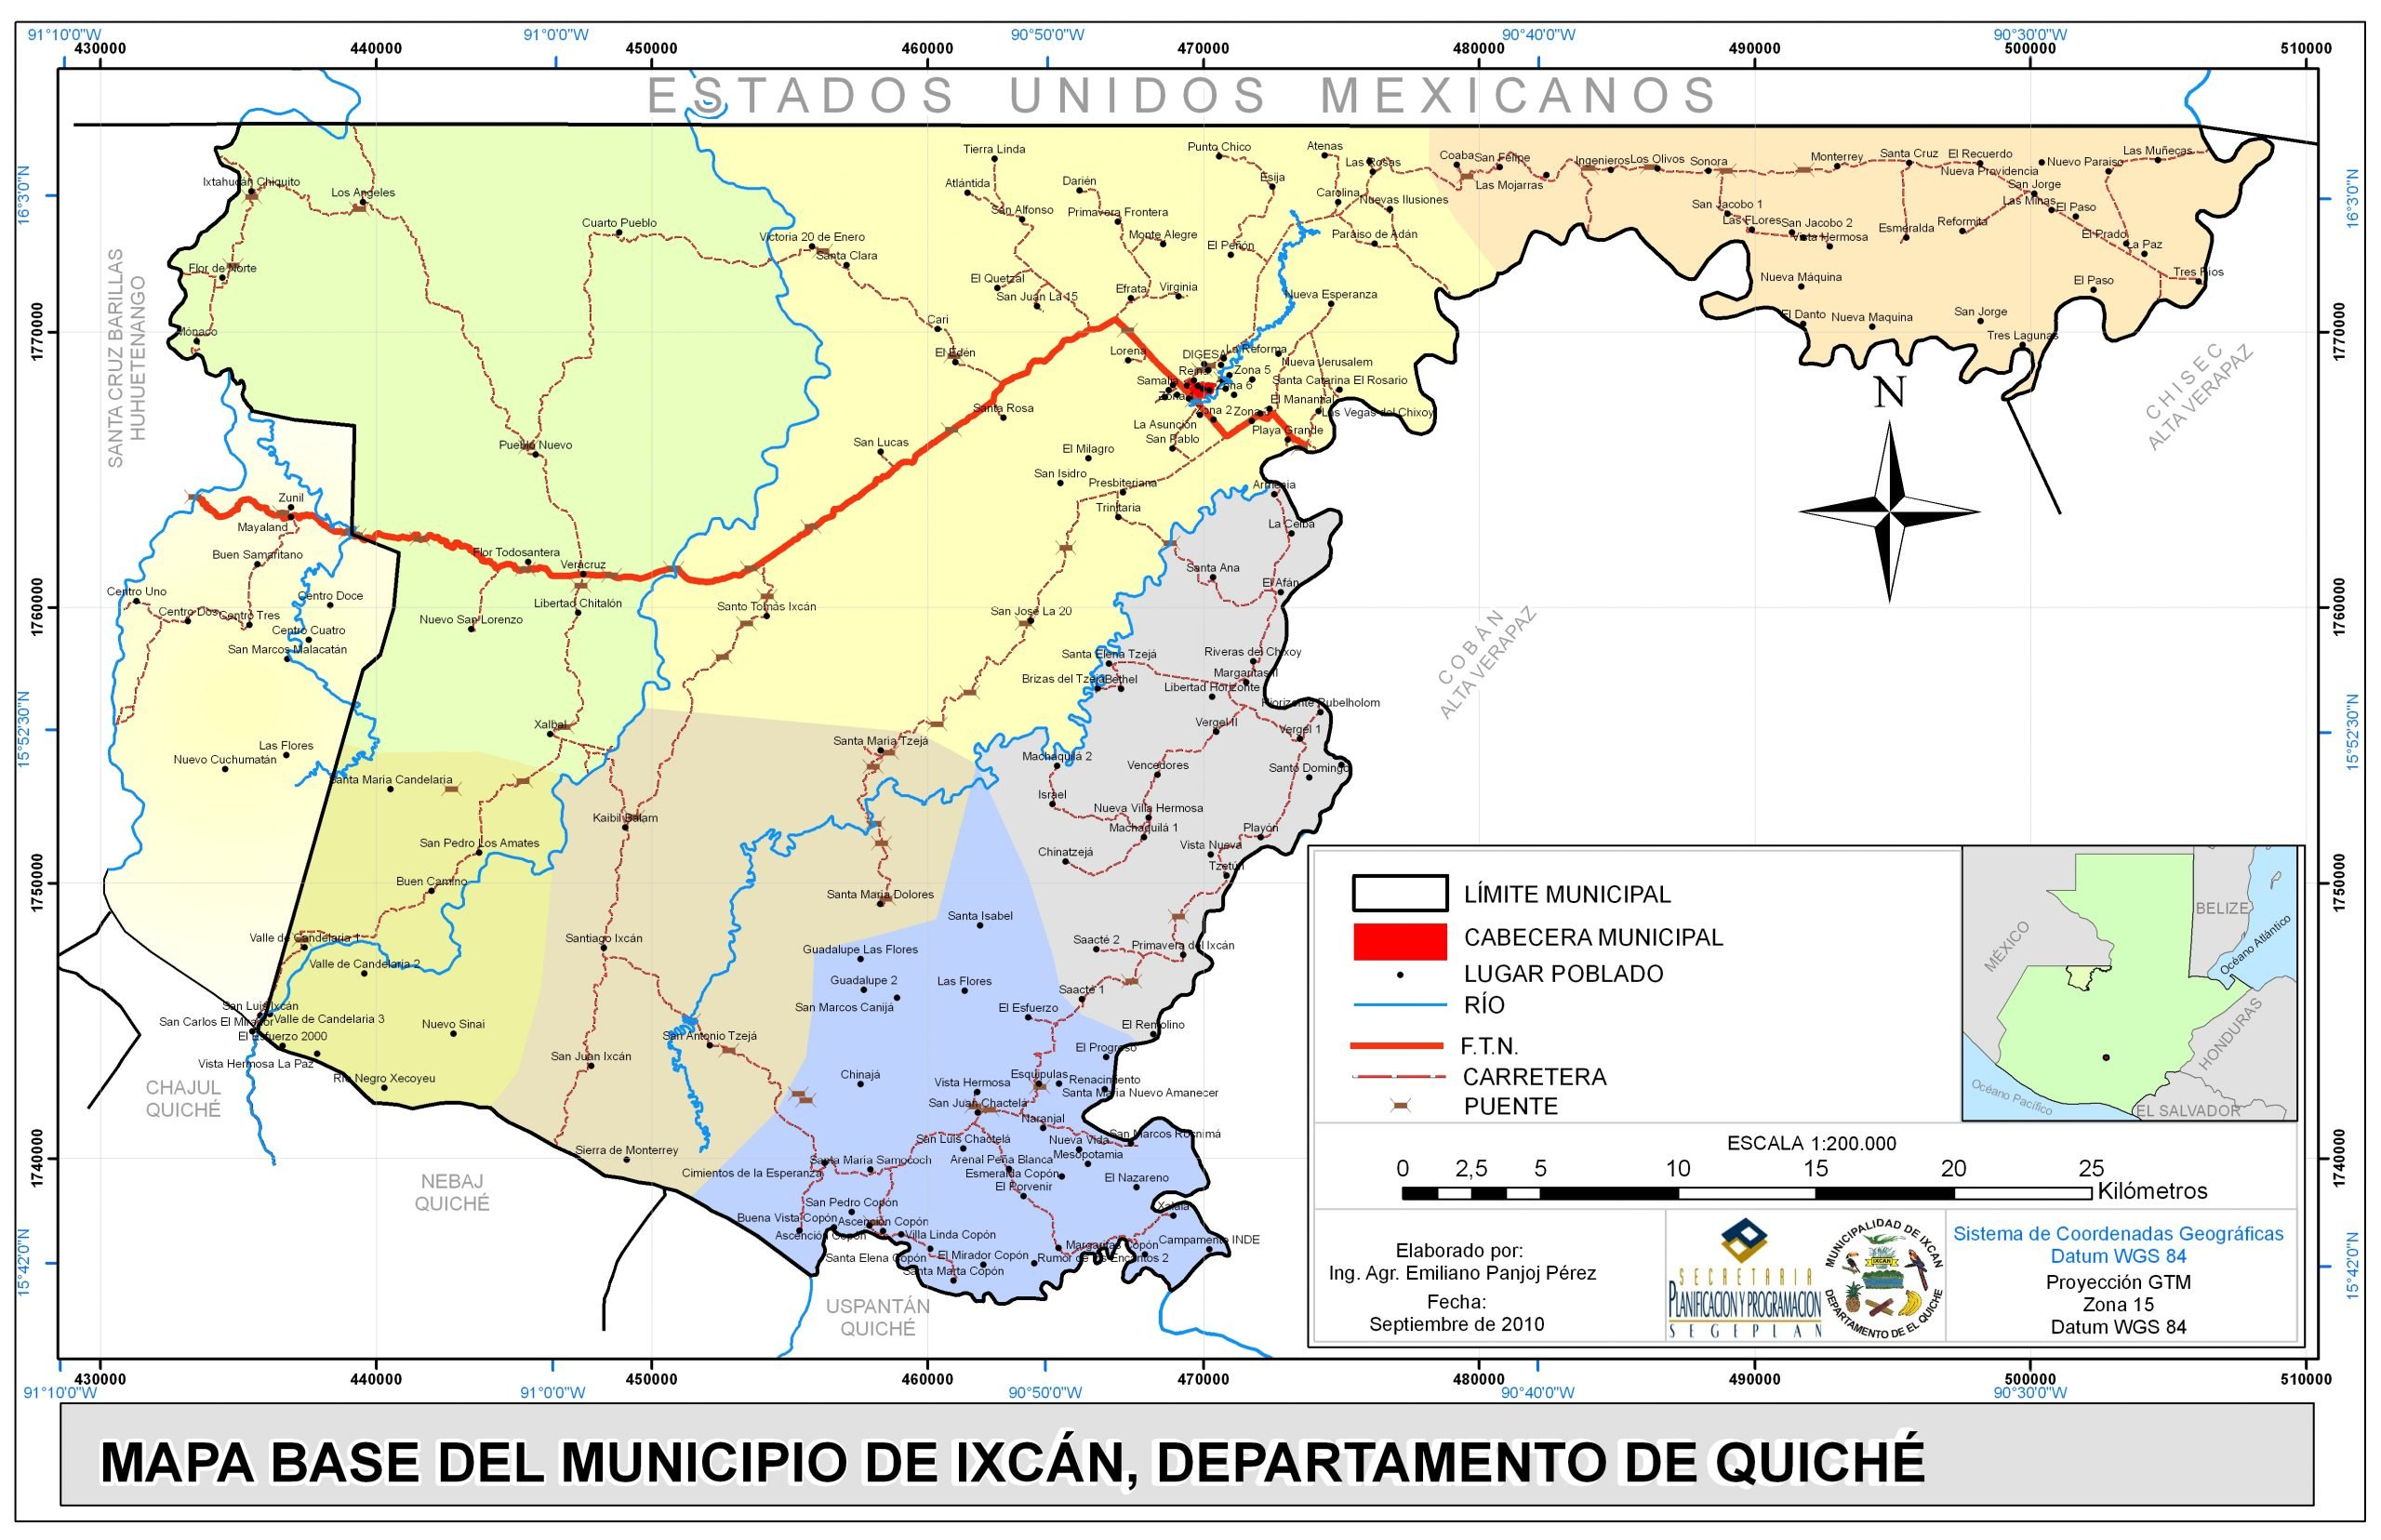 Map of the Ixcan region